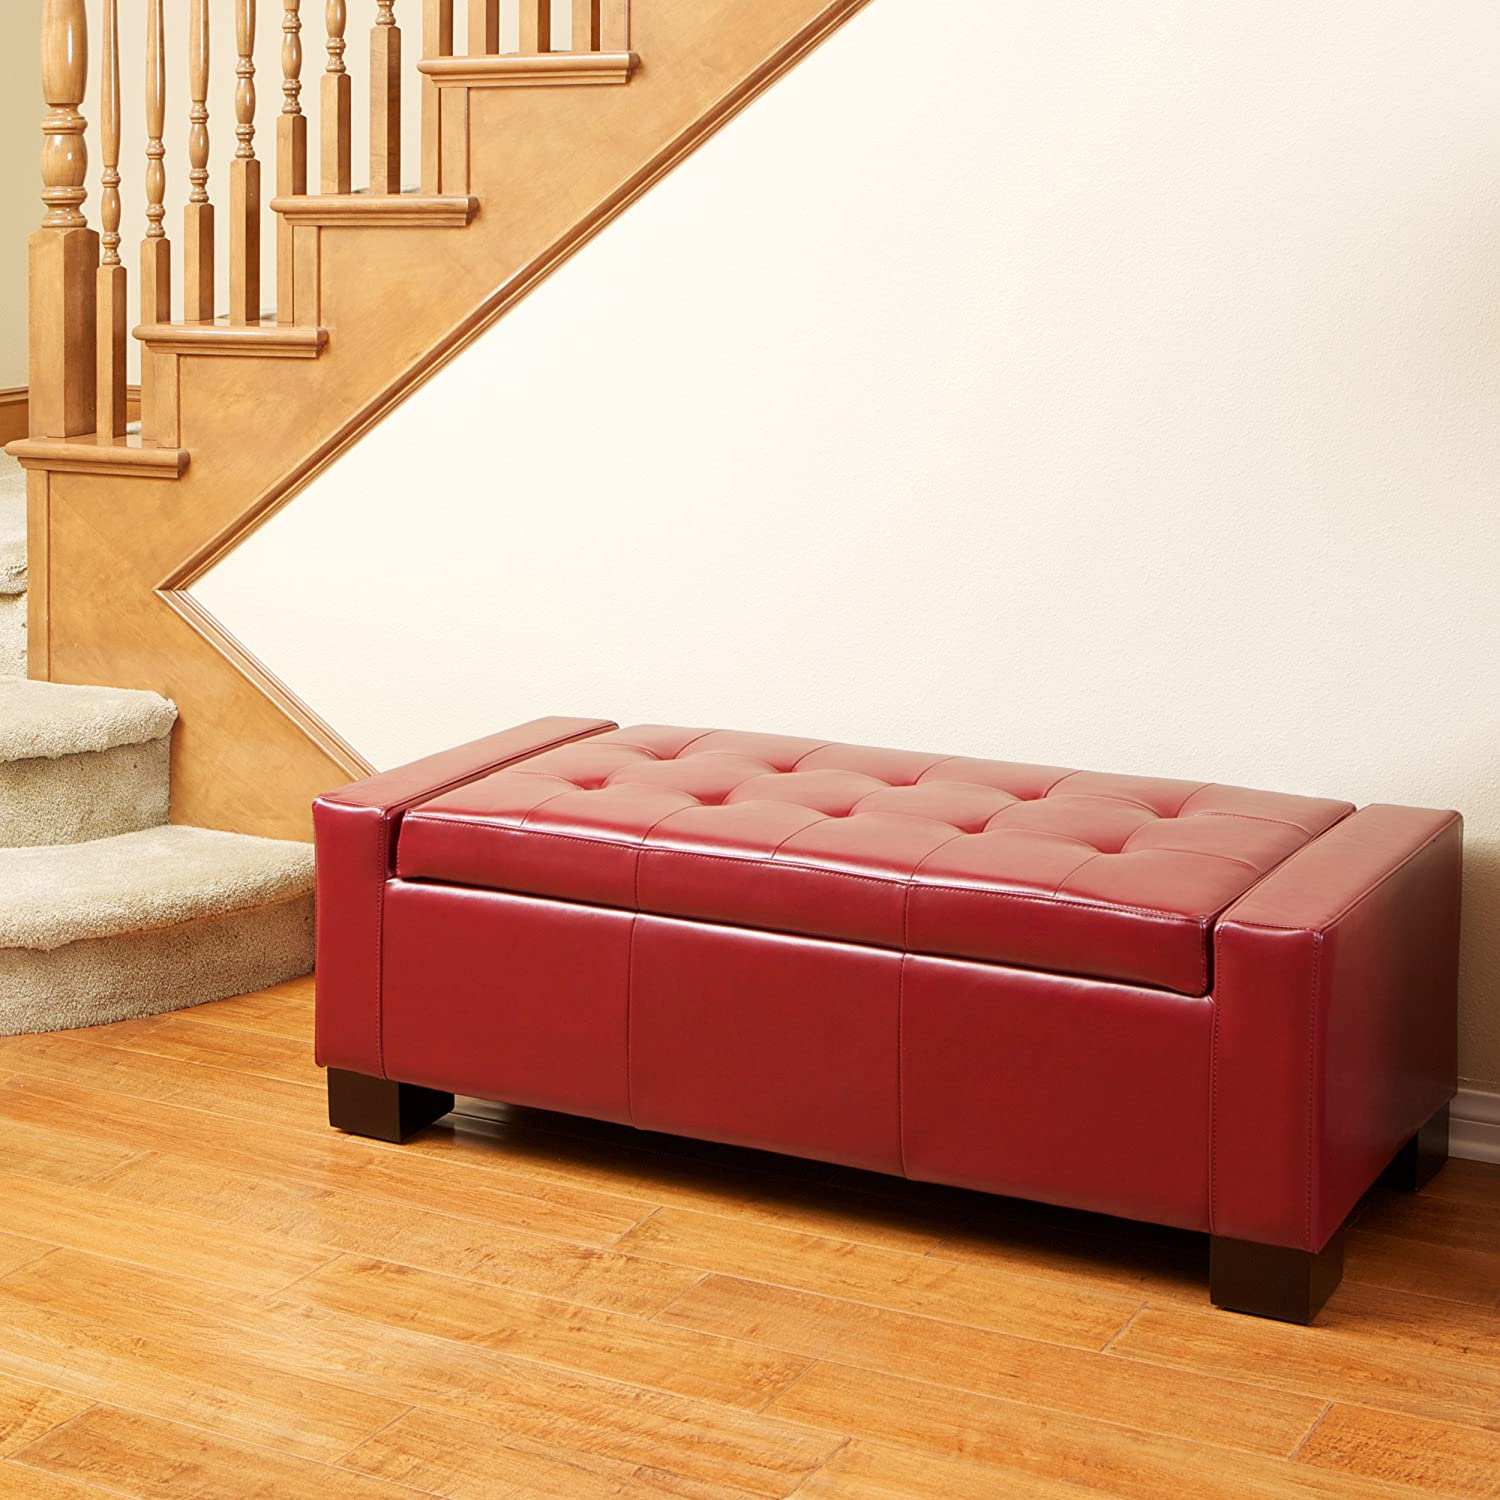 ottoman walmart canada ip santa bench storage large wyndenhall red en fe rectangular